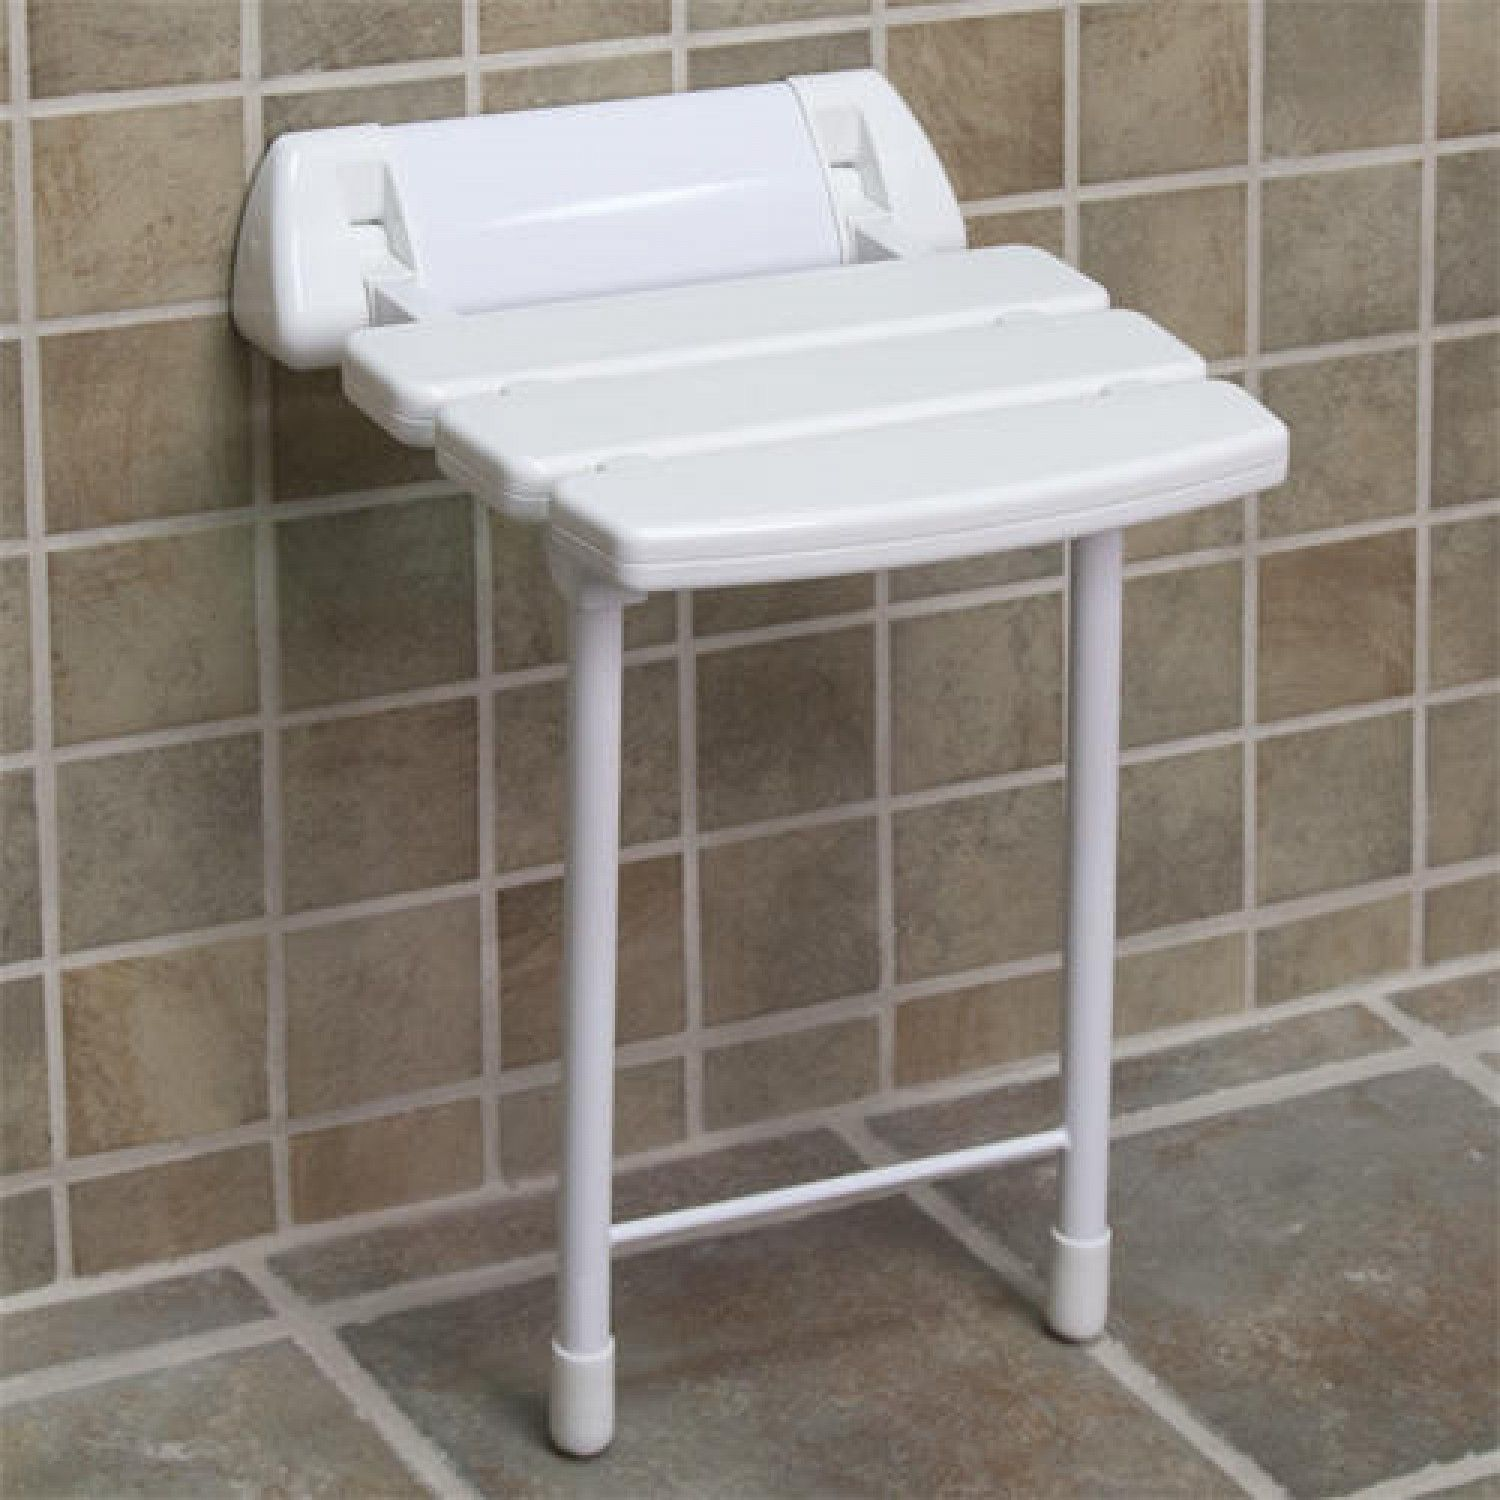 Wall-Mount Folding Shower Seat with Legs - White | Shower seat, Wall ...